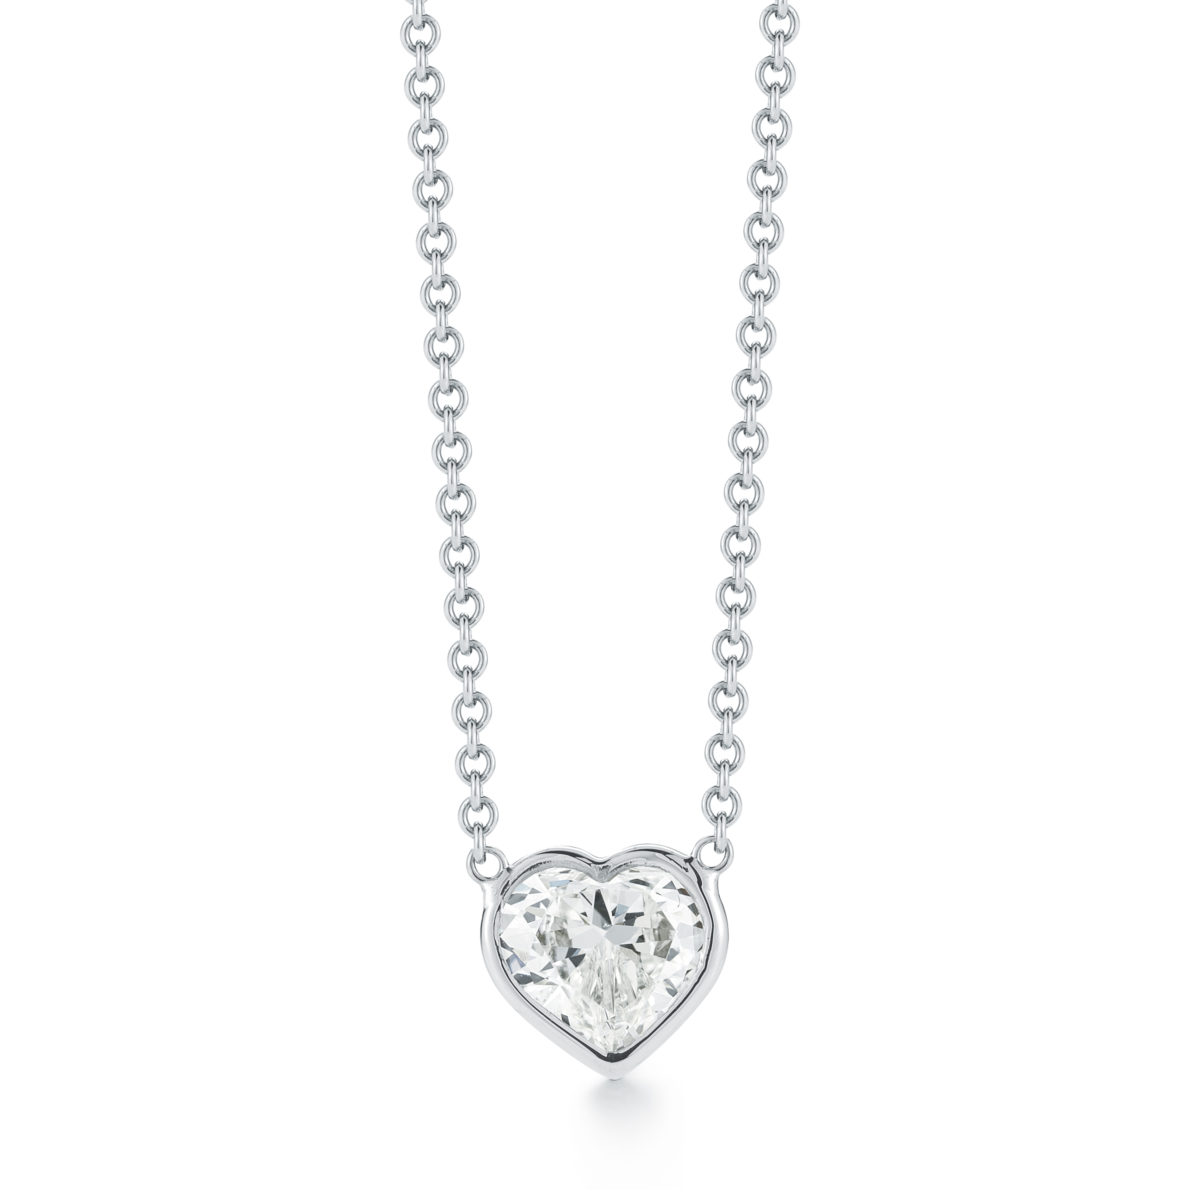 bracelet wg ko shape products chain diamond anita heart